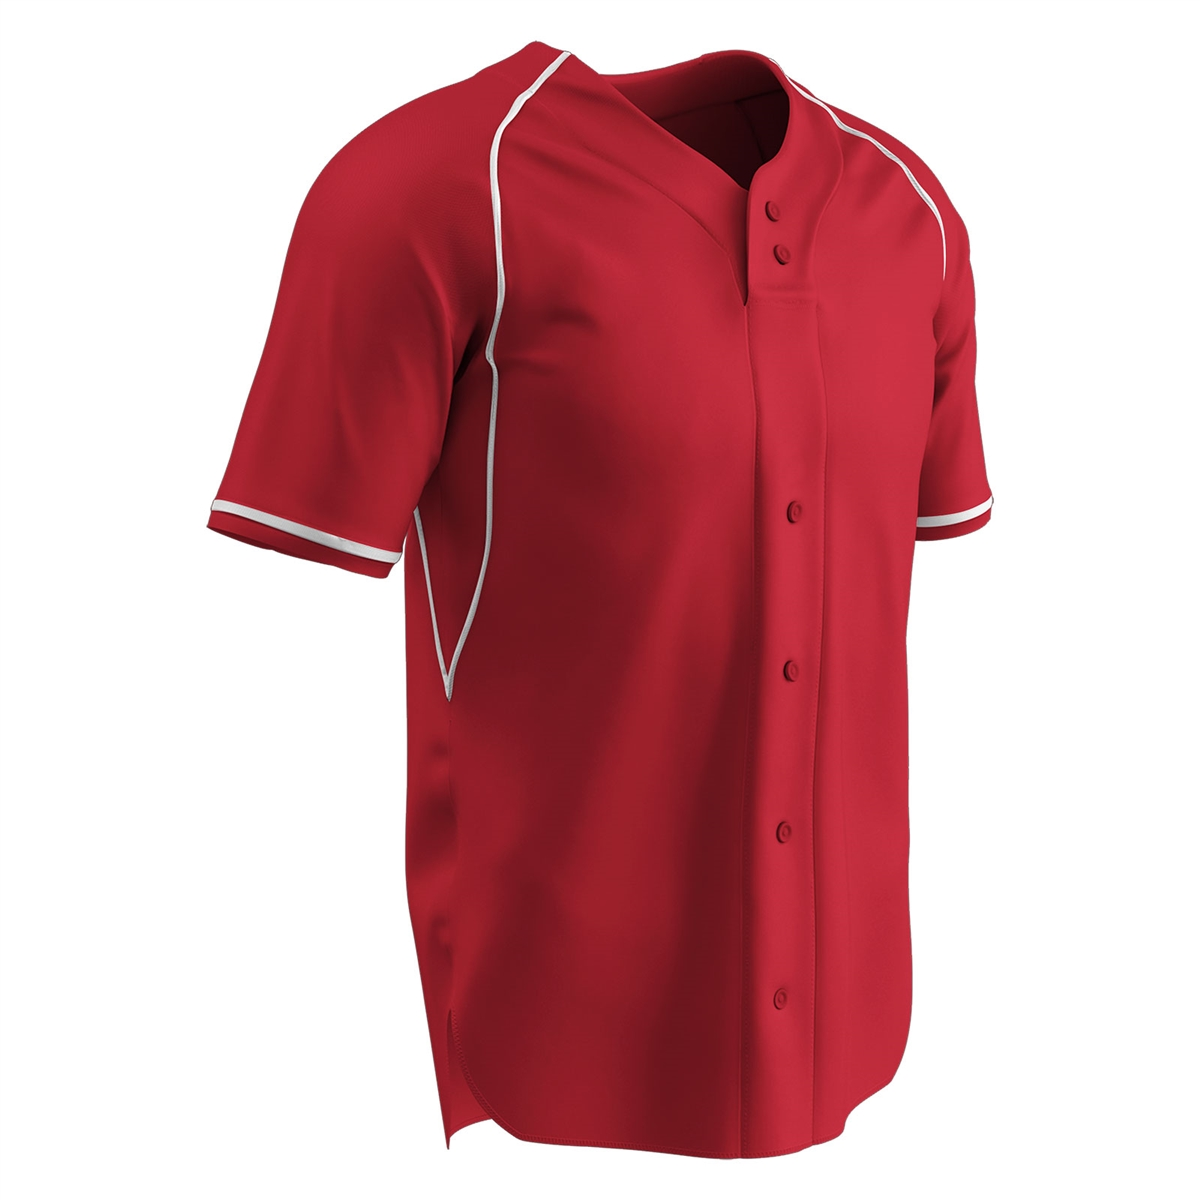 19d997fb93d Champro Cycle 2 Button Faux Baseball Jersey Larger Photo Email A Friend